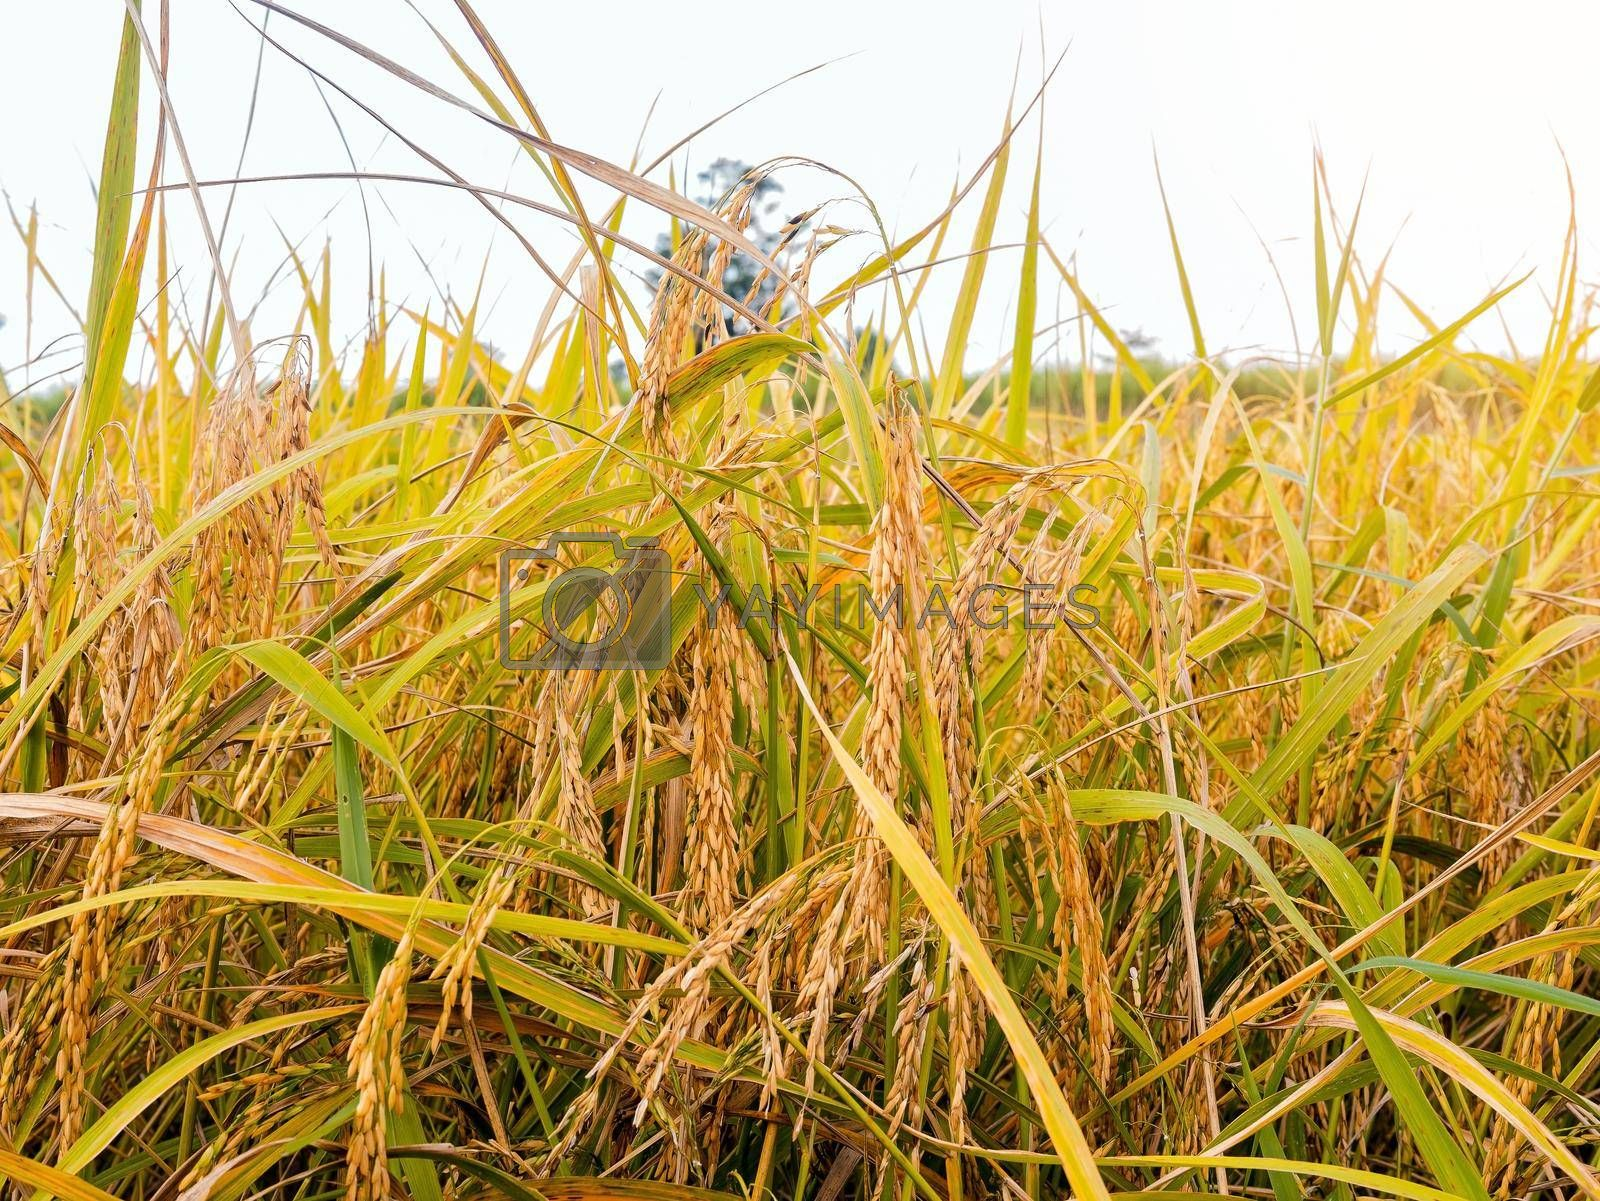 Golden yellow paddy in the fields ready for harvest